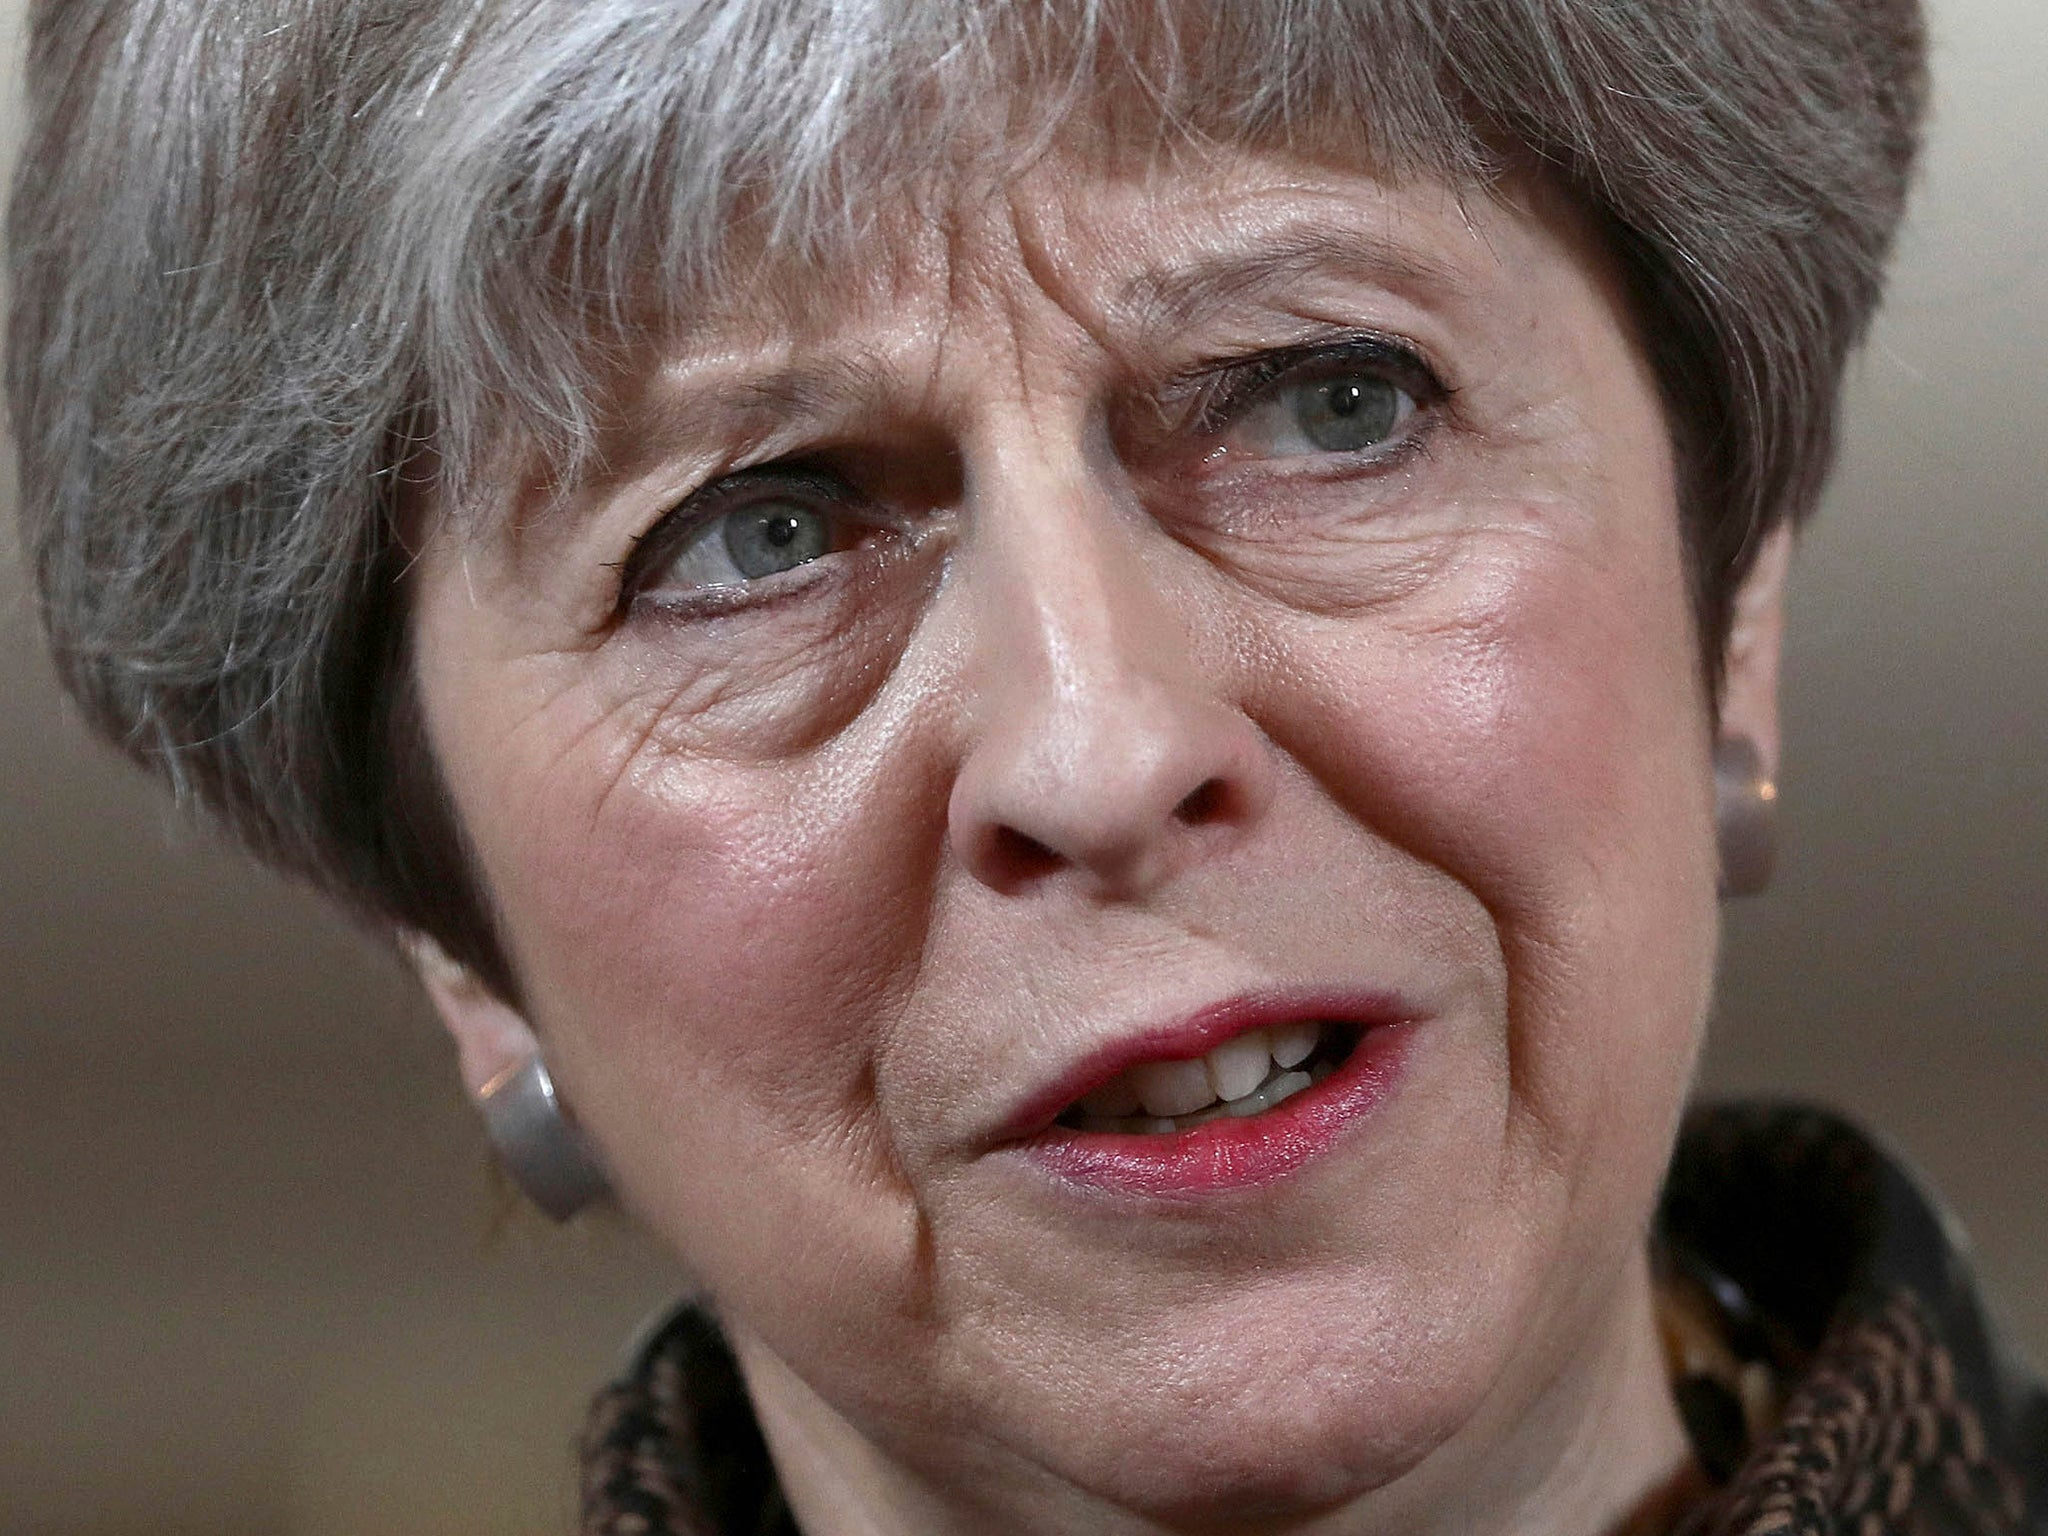 Theresa May was hardly thinking of the 'will of the people' when it came to military intervention